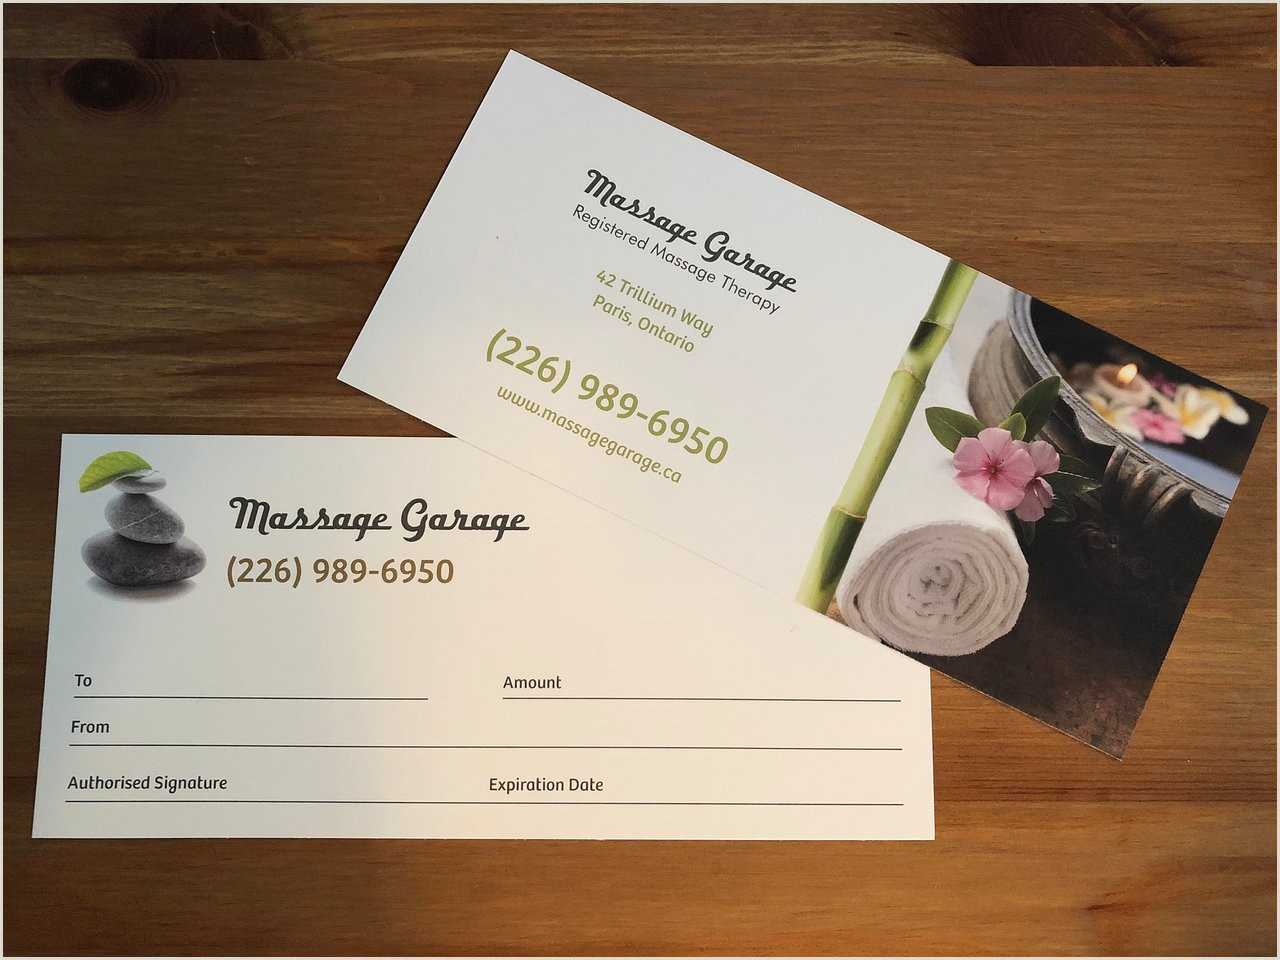 Massage Therapy Best Business Cards Massage Garage Paris All You Need To Know Before You Go